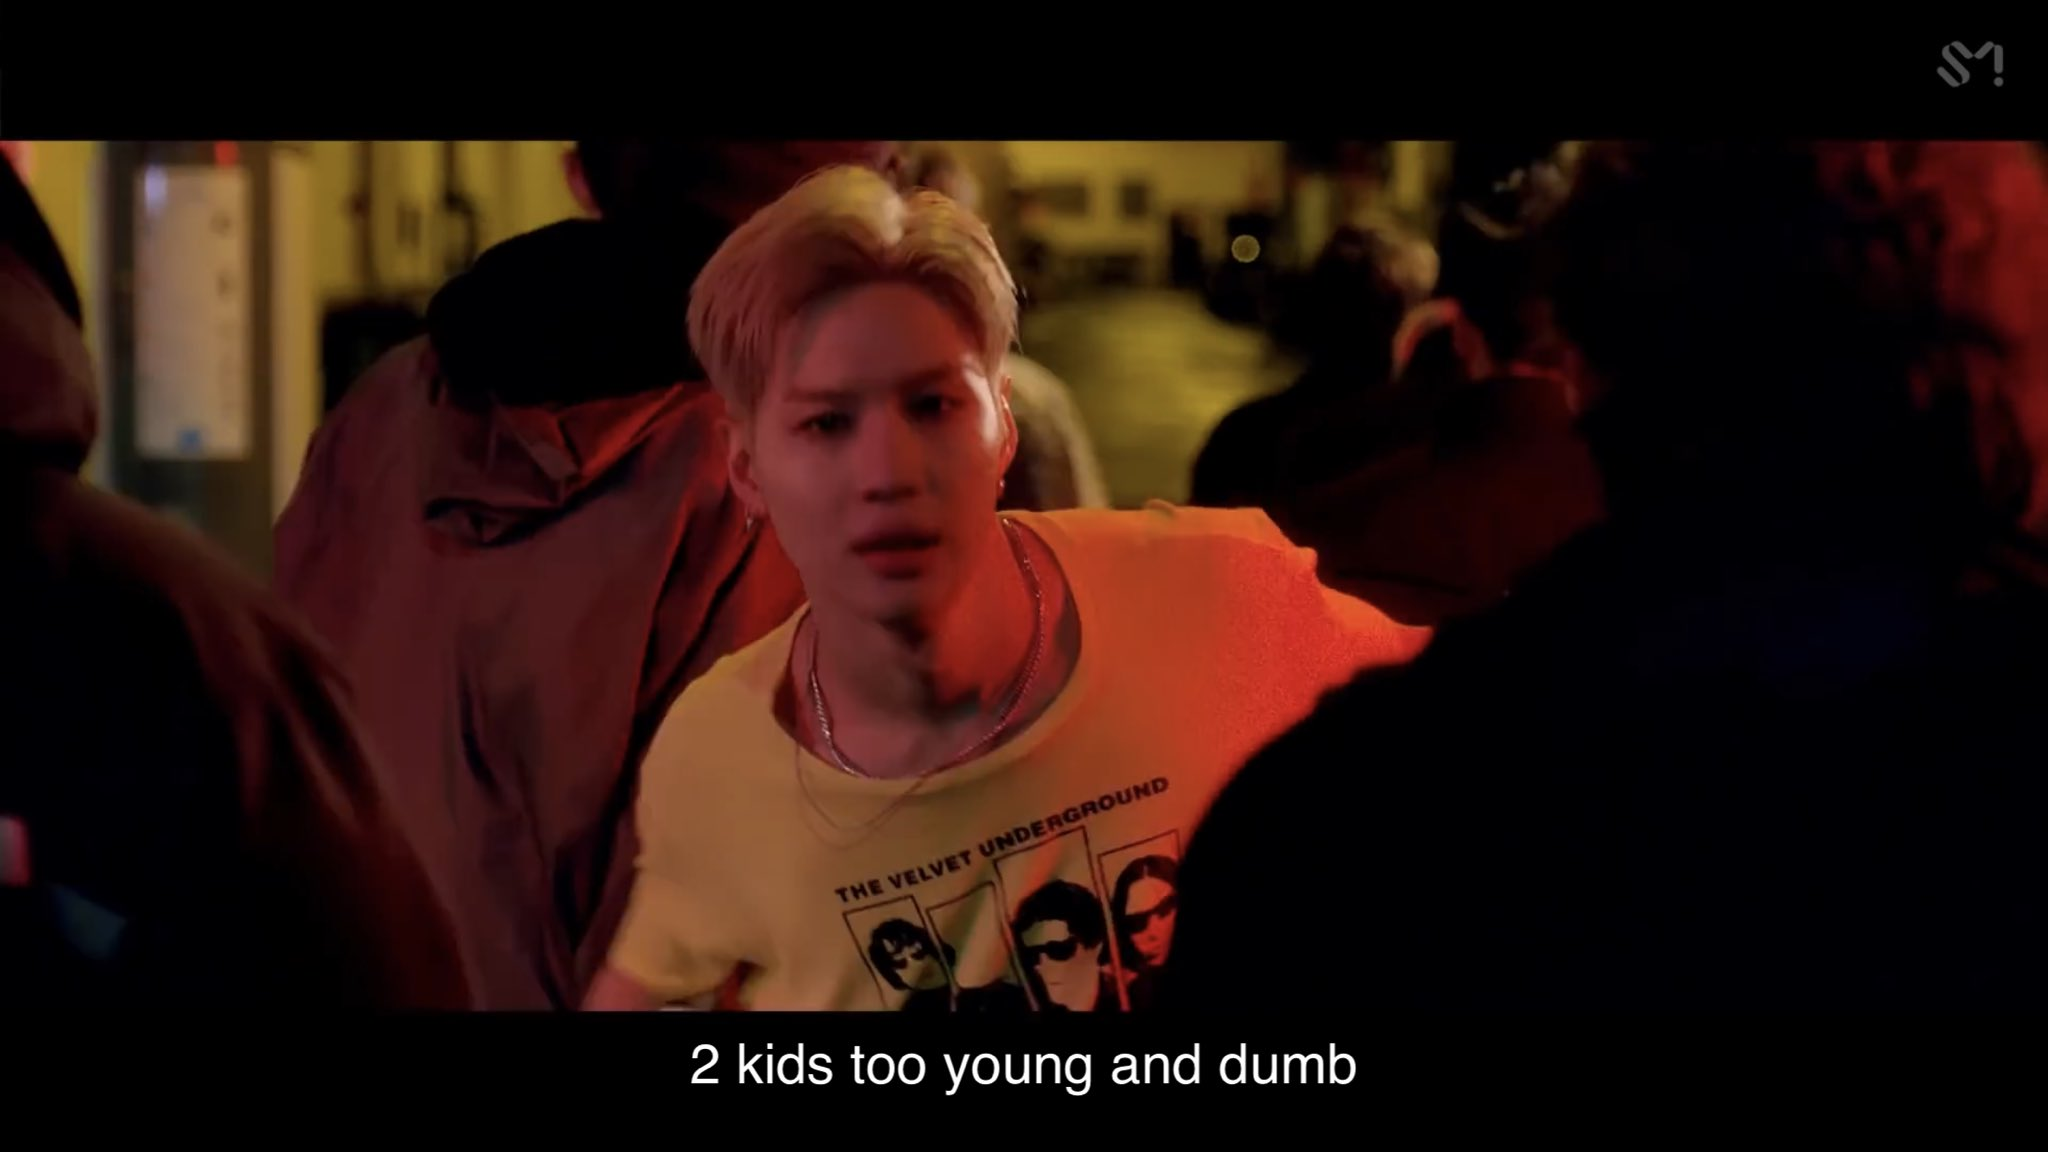 Taemin ''2 Kids'' : Electric Pop Feelings of a Young Love Heartbreak Taemin ''2 Kids'' : Electric Pop Feelings of a Young Love Heartbreak Vanity Teen 虚荣青年 Menswear & new faces magazine